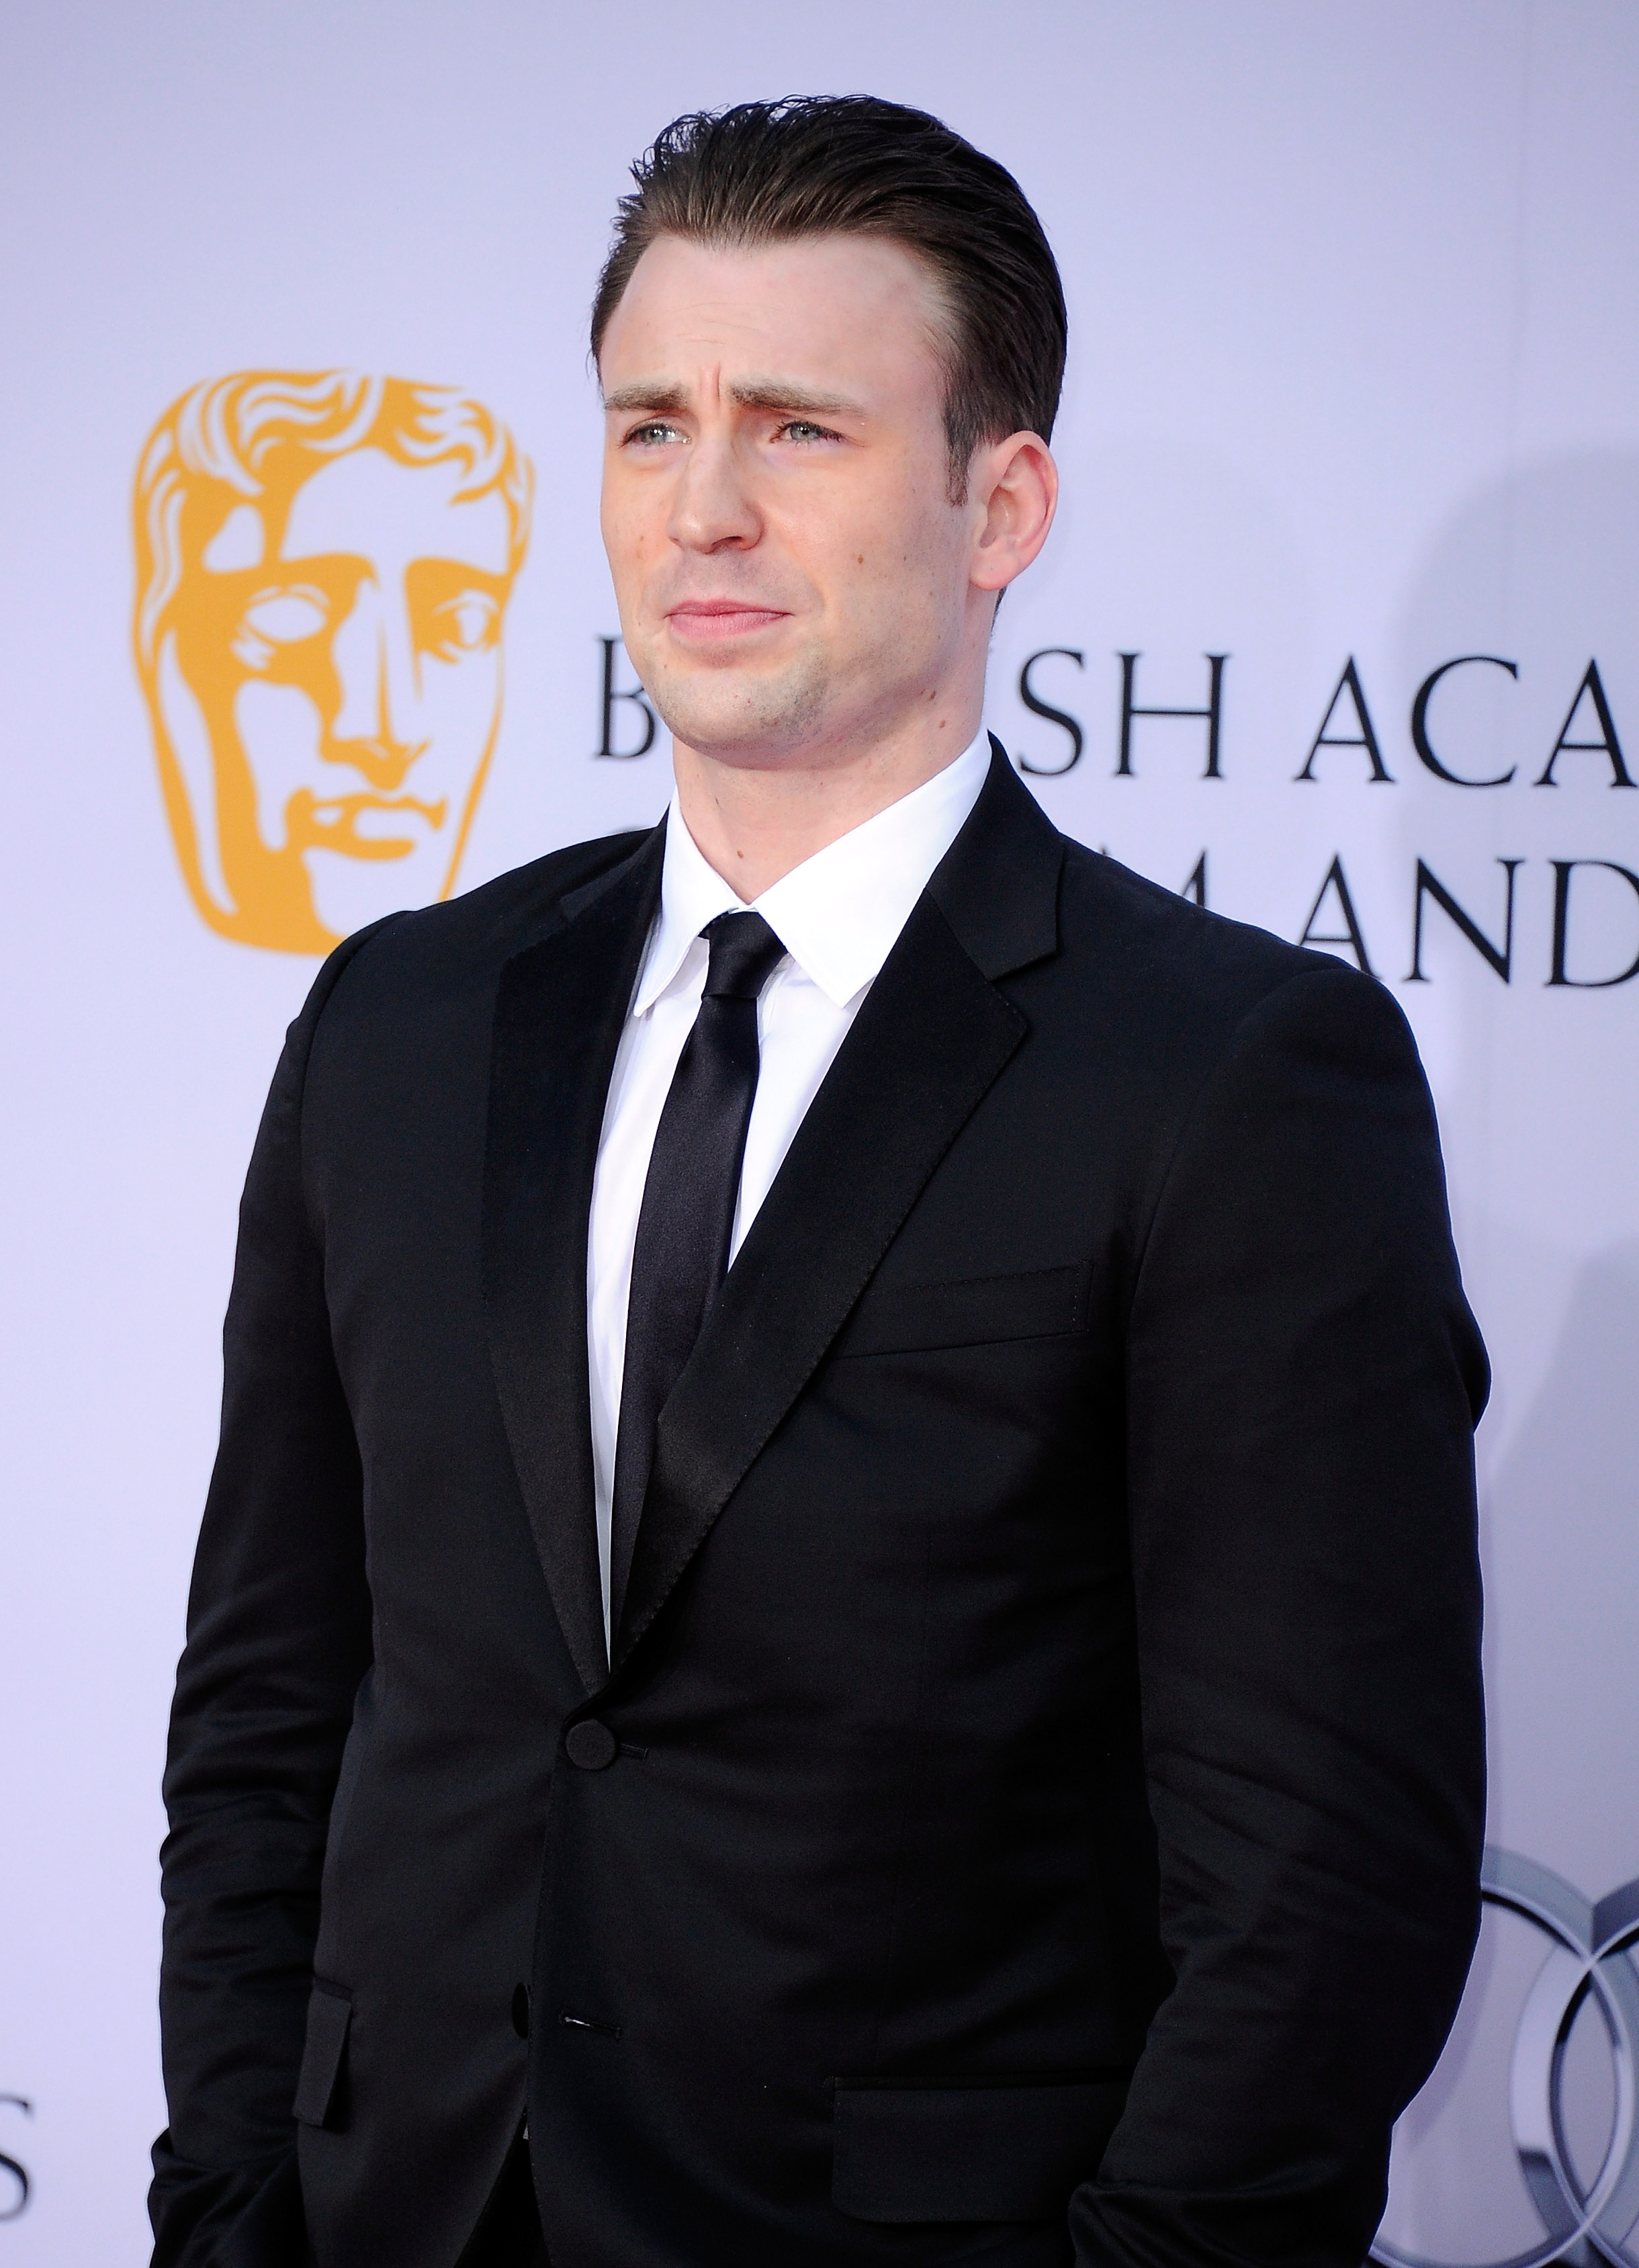 Chris Evans at the BAFTA Brits to Watch event in LA.